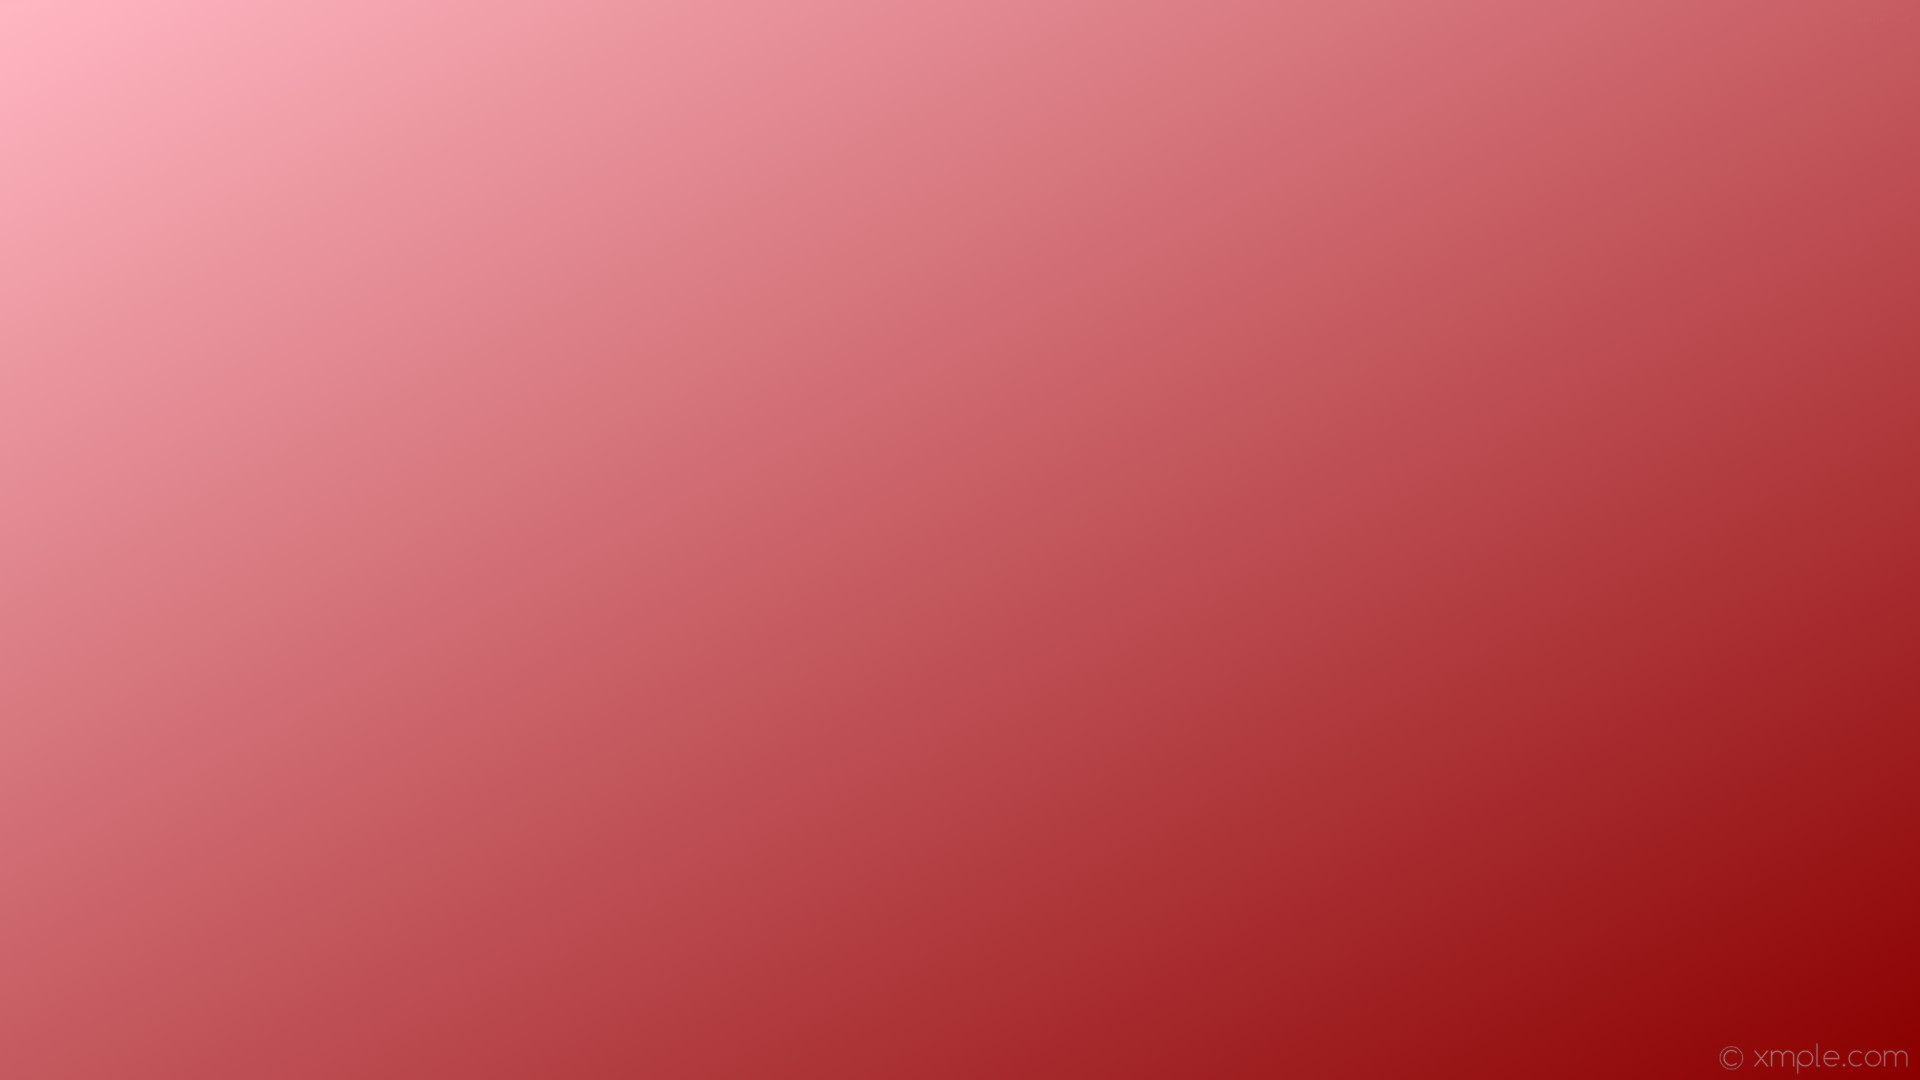 1920x1080 wallpaper pink gradient red linear light pink dark red #ffb6c1 #8b0000 150°